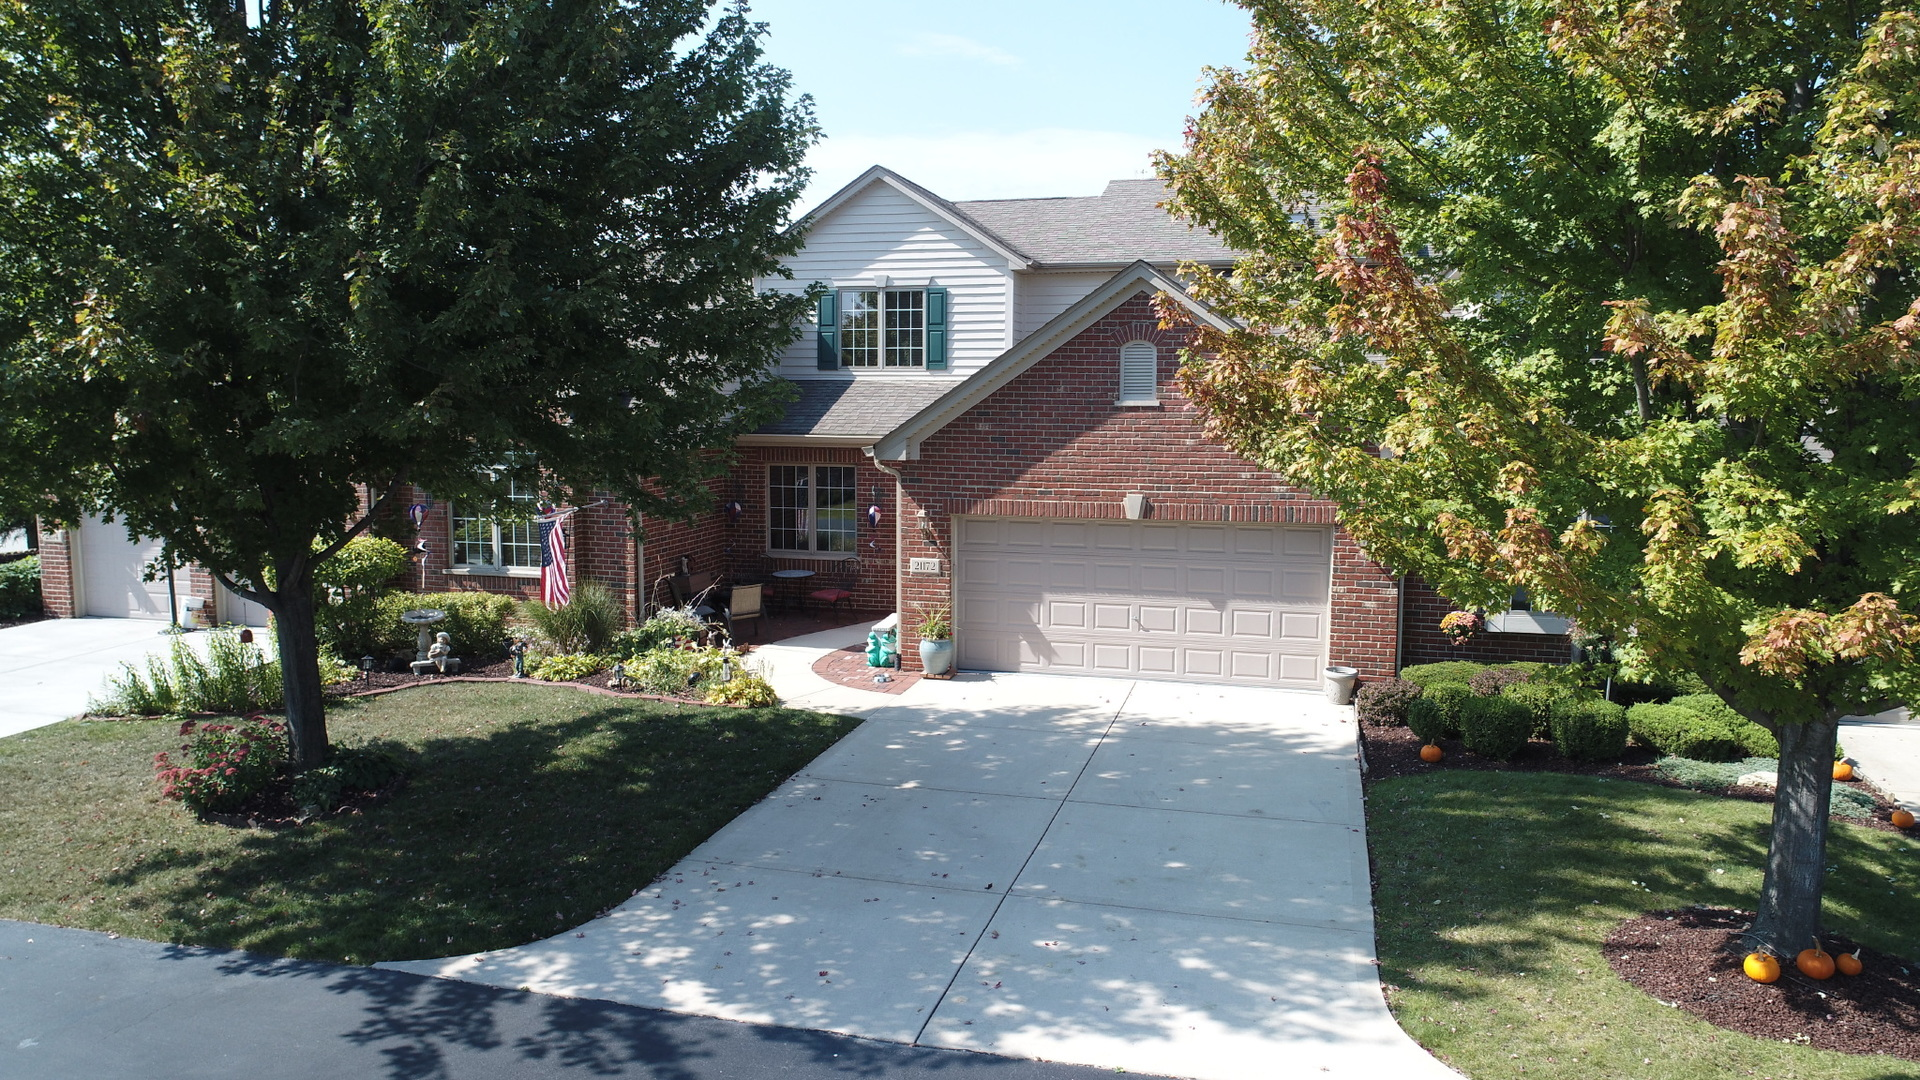 21172 Plank Trail Court, Frankfort in Will County, IL 60423 Home for Sale